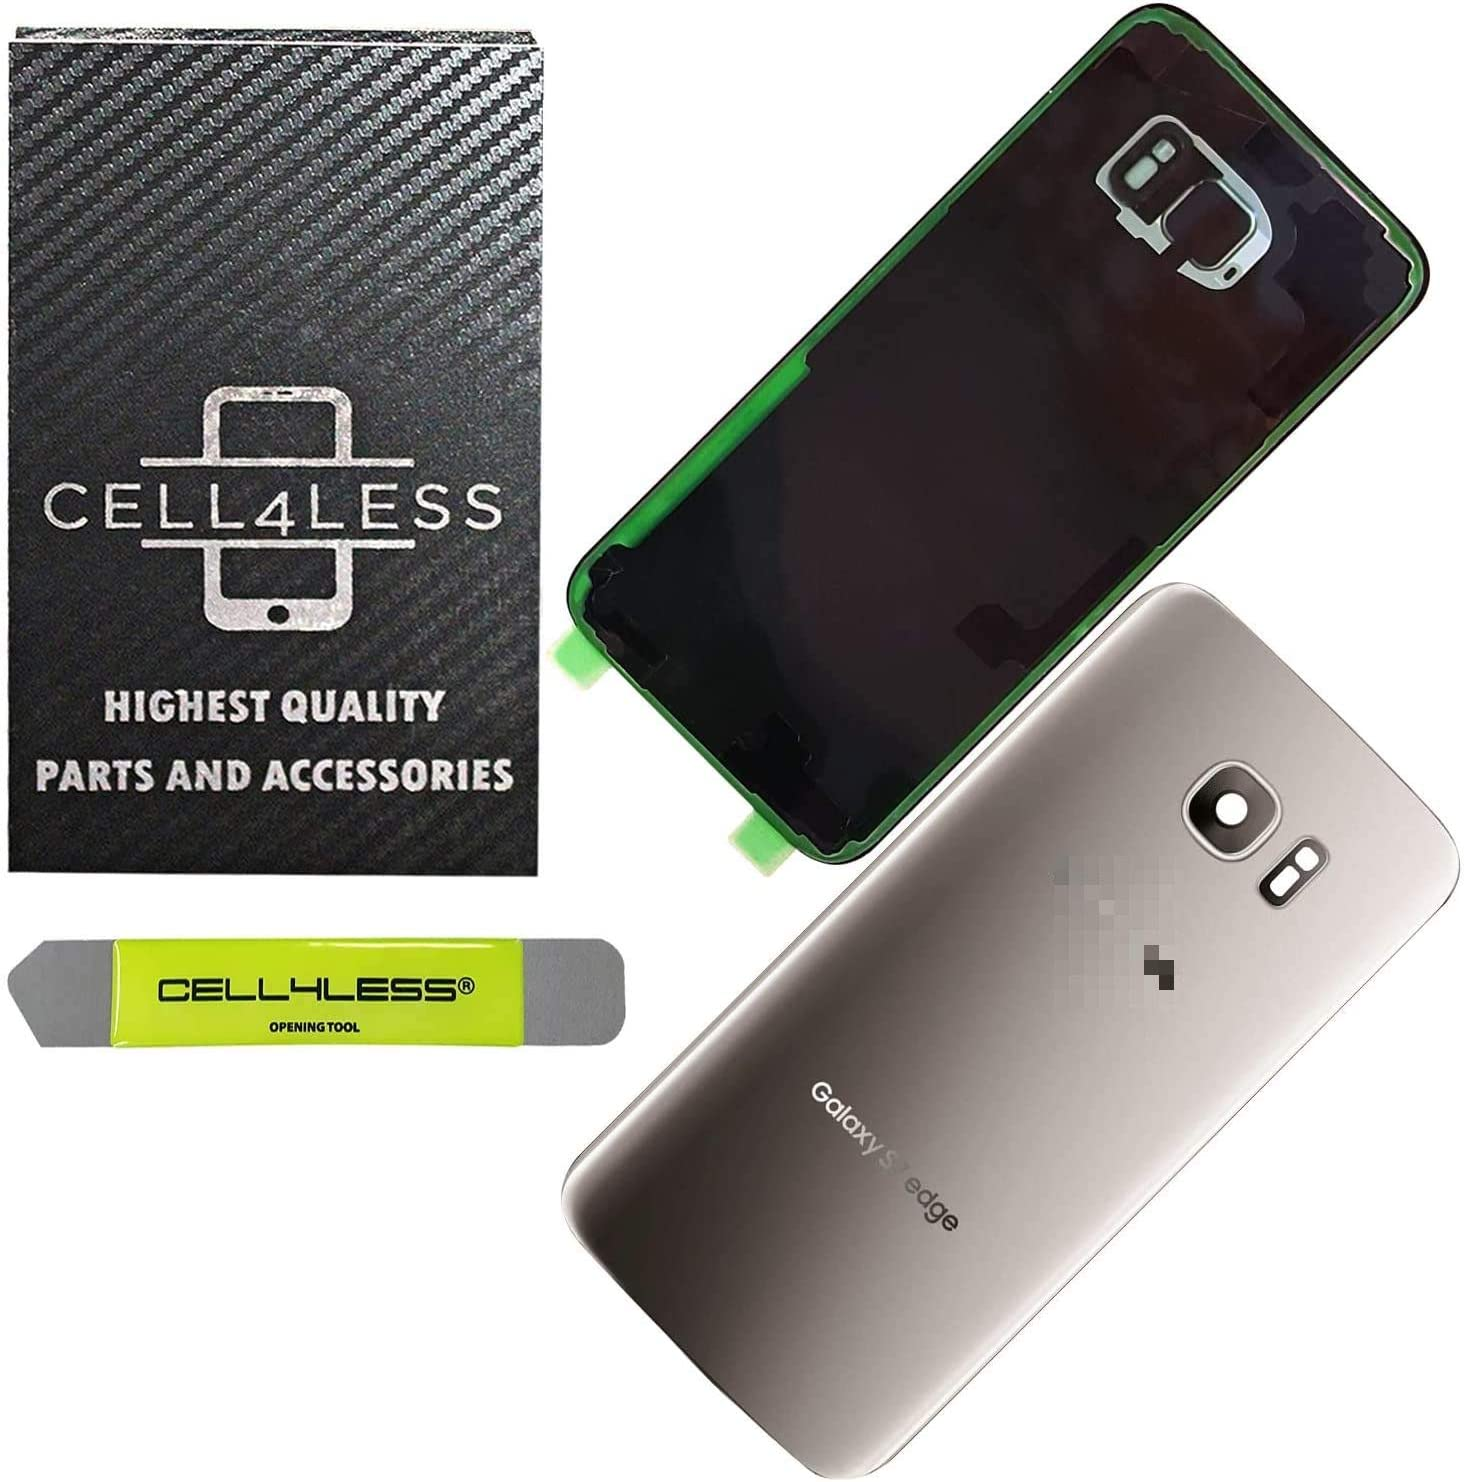 Outlet SALE CELL4LESS Compatible Back Clearance SALE Limited time Glass Cover w Came Door Installed